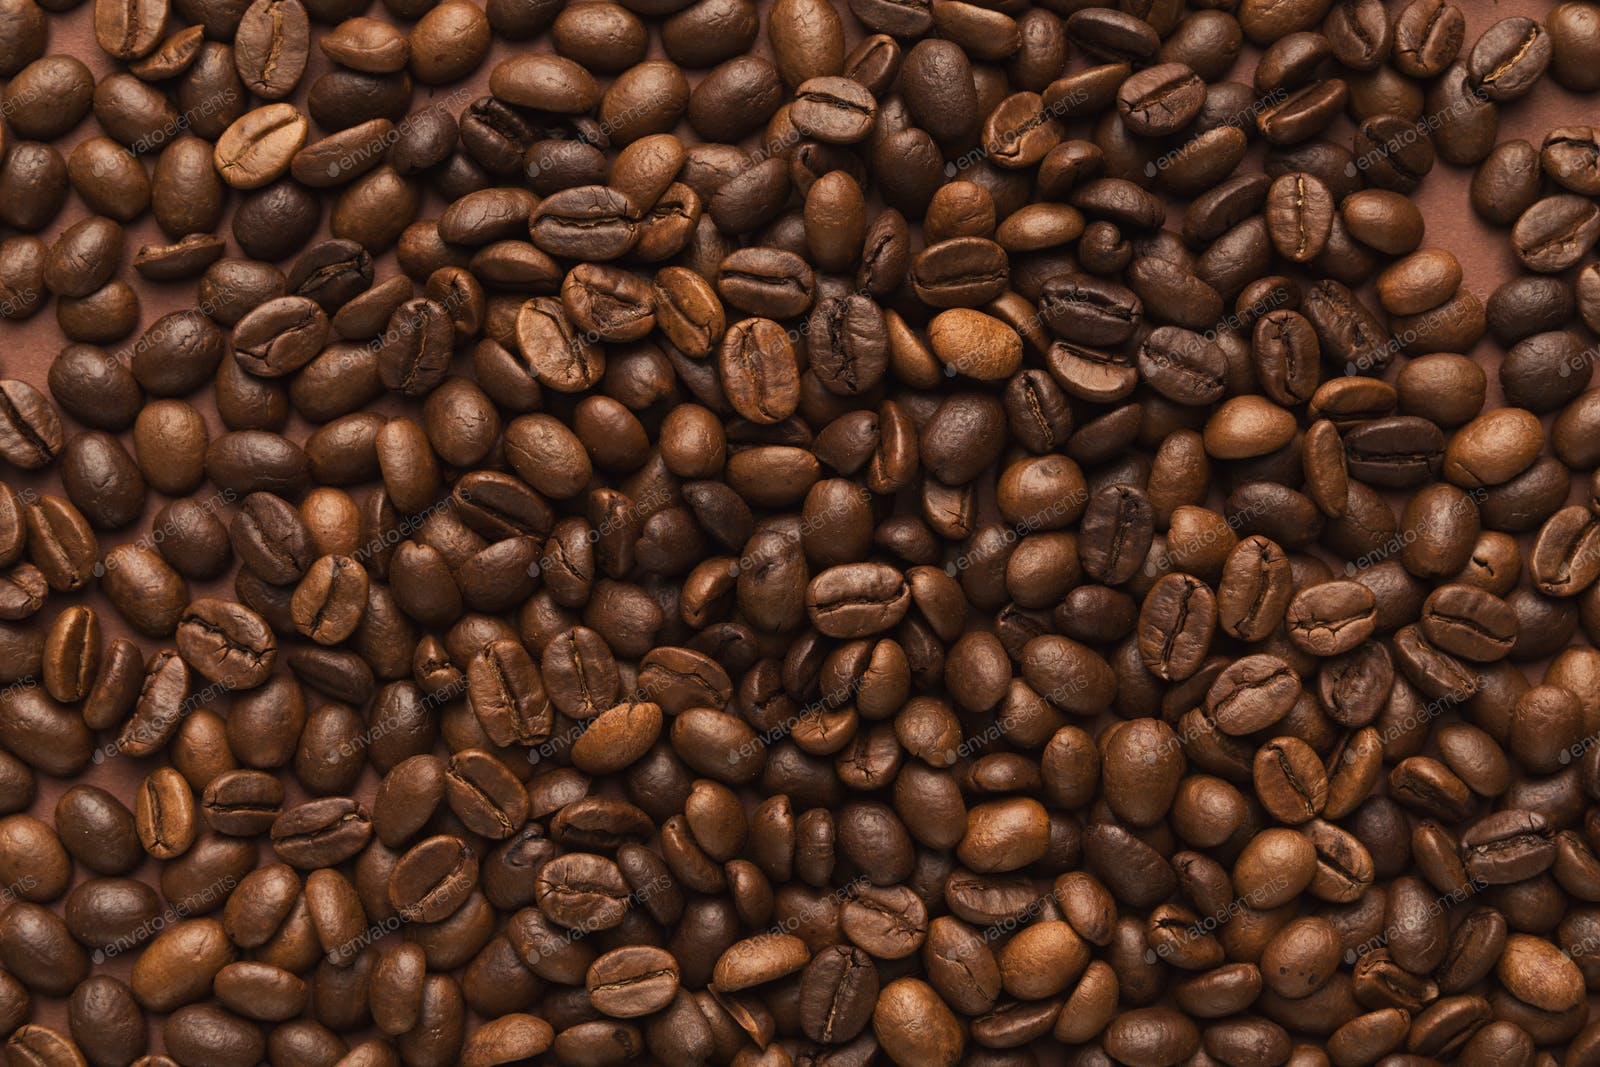 Closeup of coffee seeds, textured background photo by Prostock-studio on  Envato Elements